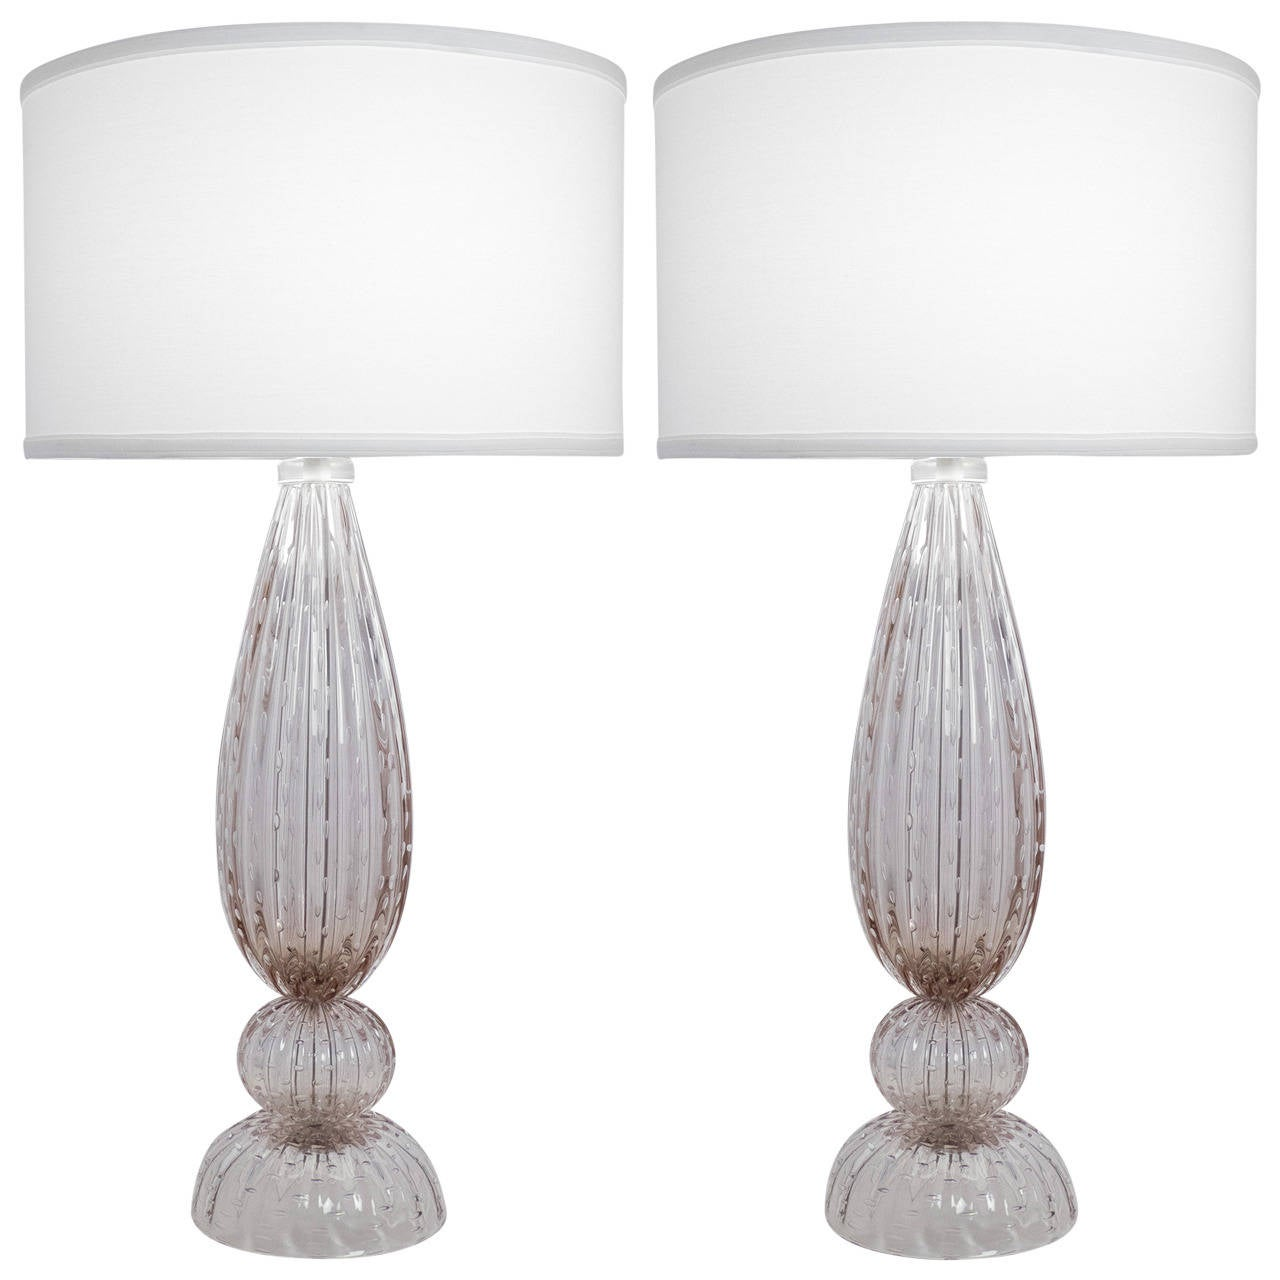 Murano Pulegoso Glass Table Lamps At 1stdibs